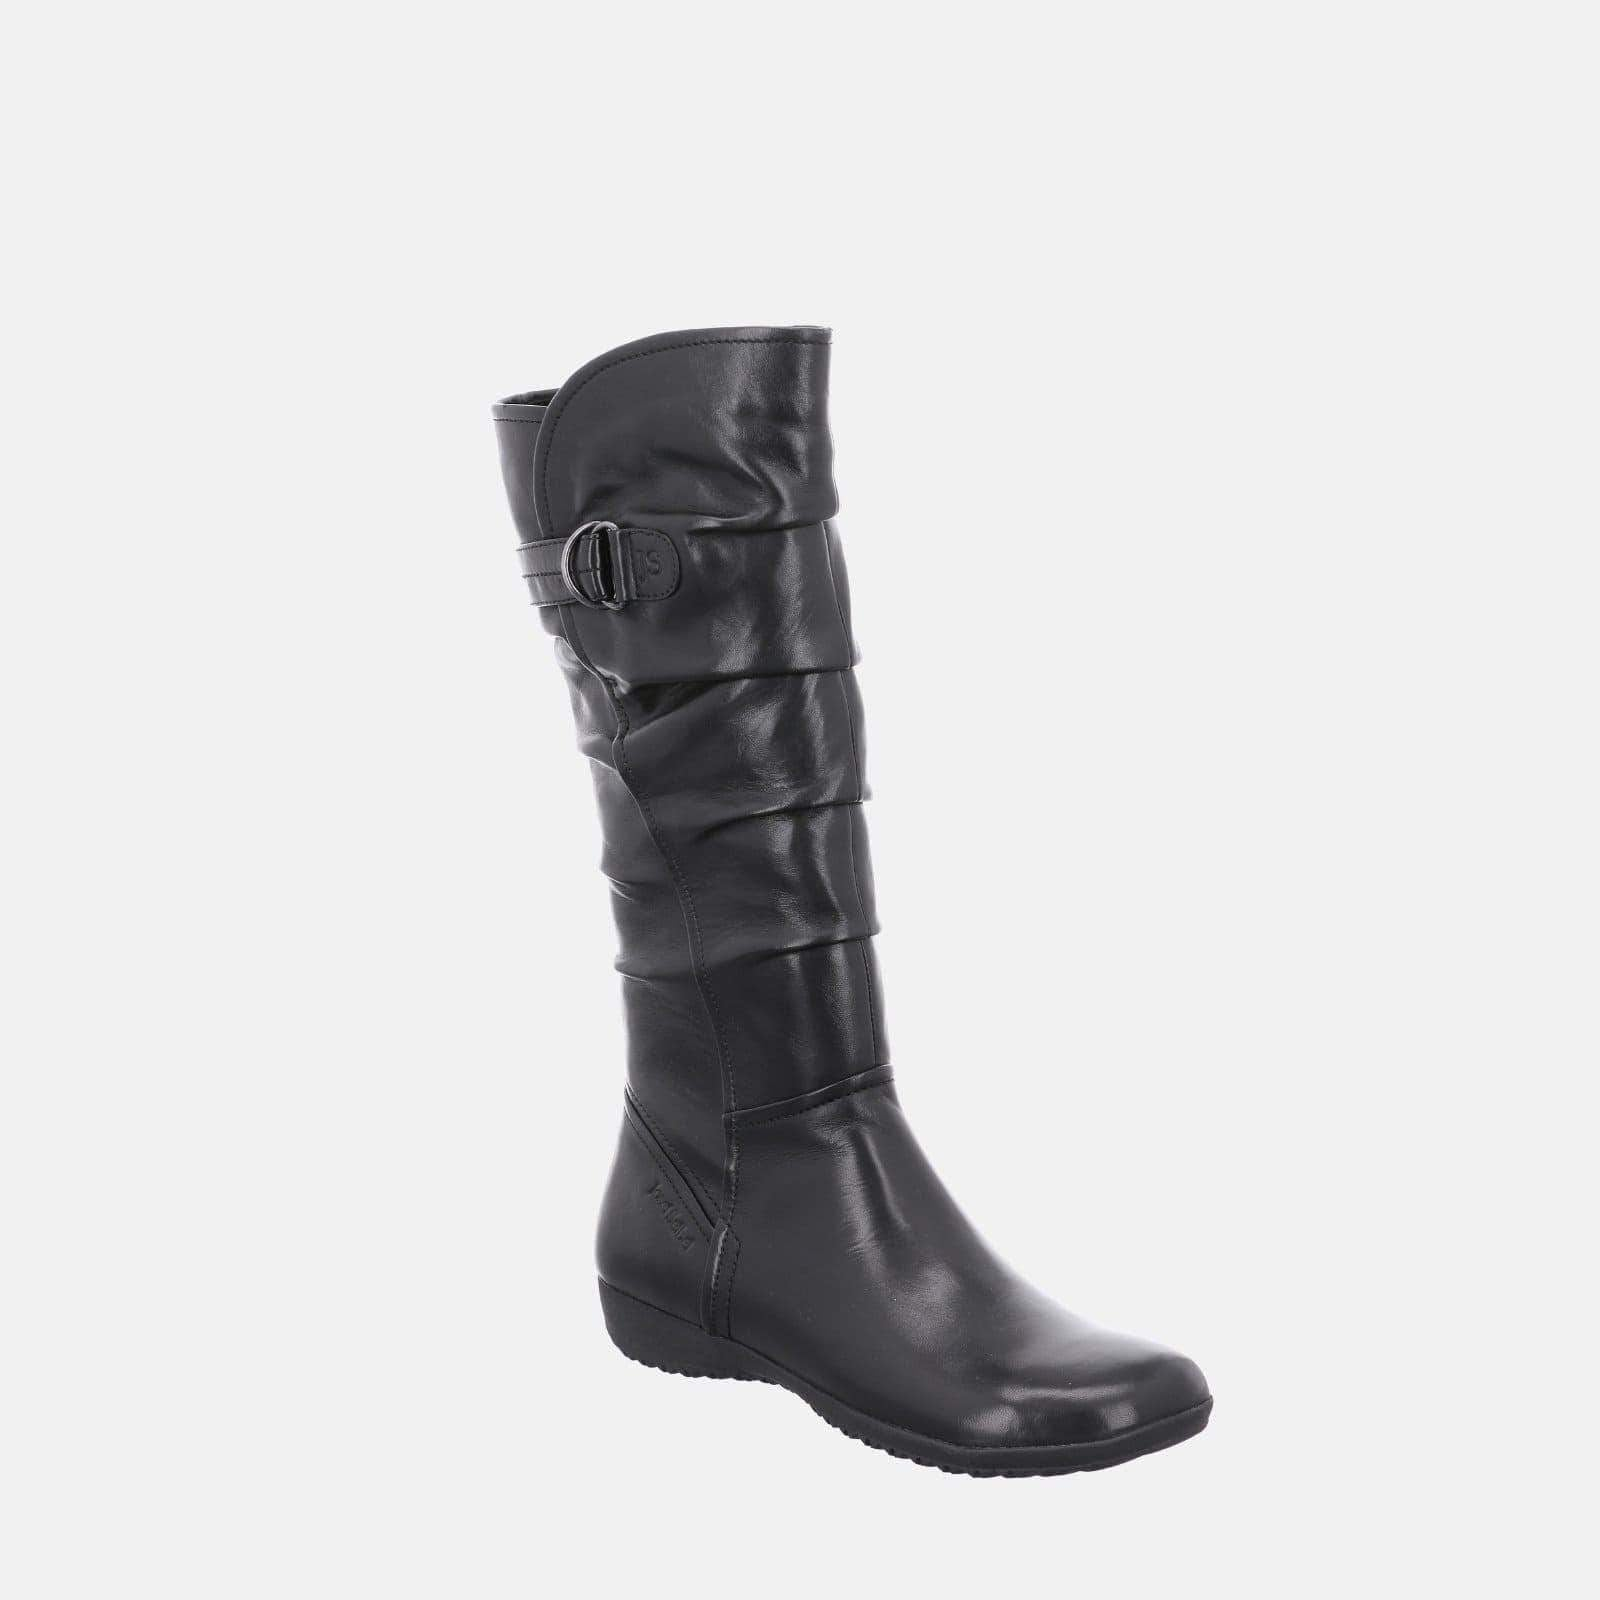 Josef Seibel Footwear Naly 23 Black